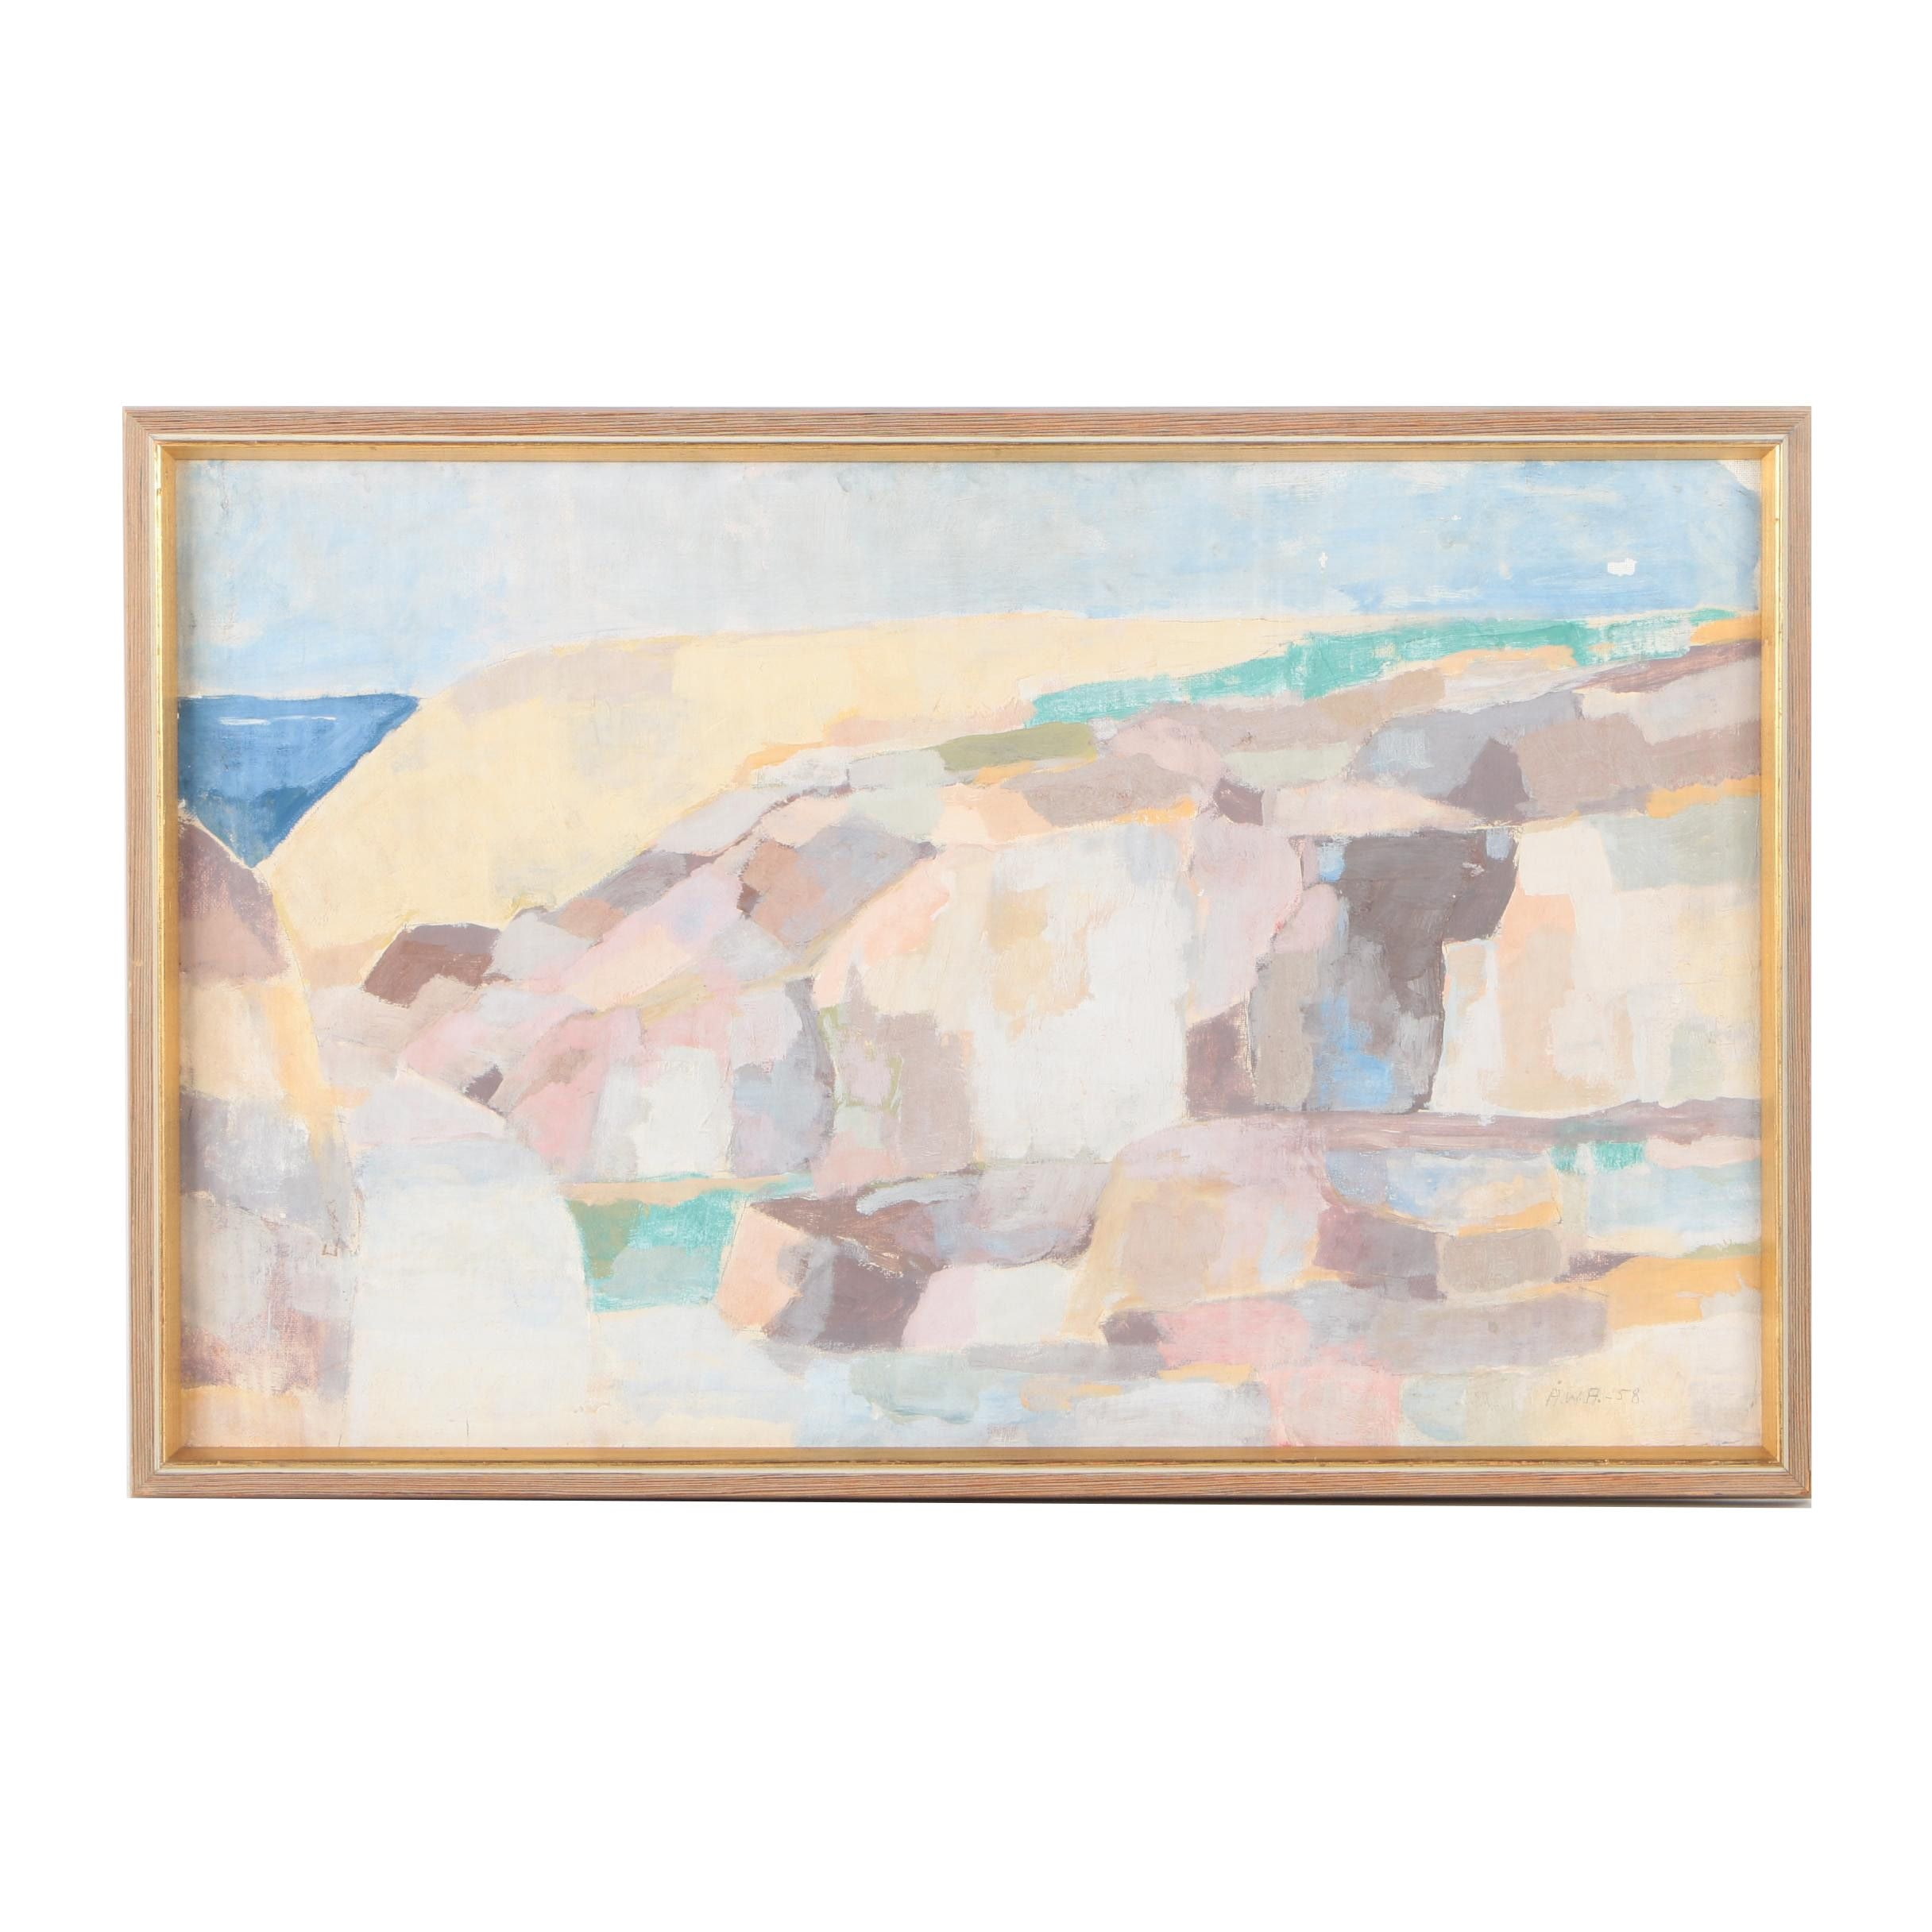 Å.W.A. Painting on Canvas of an Abstract Seascape